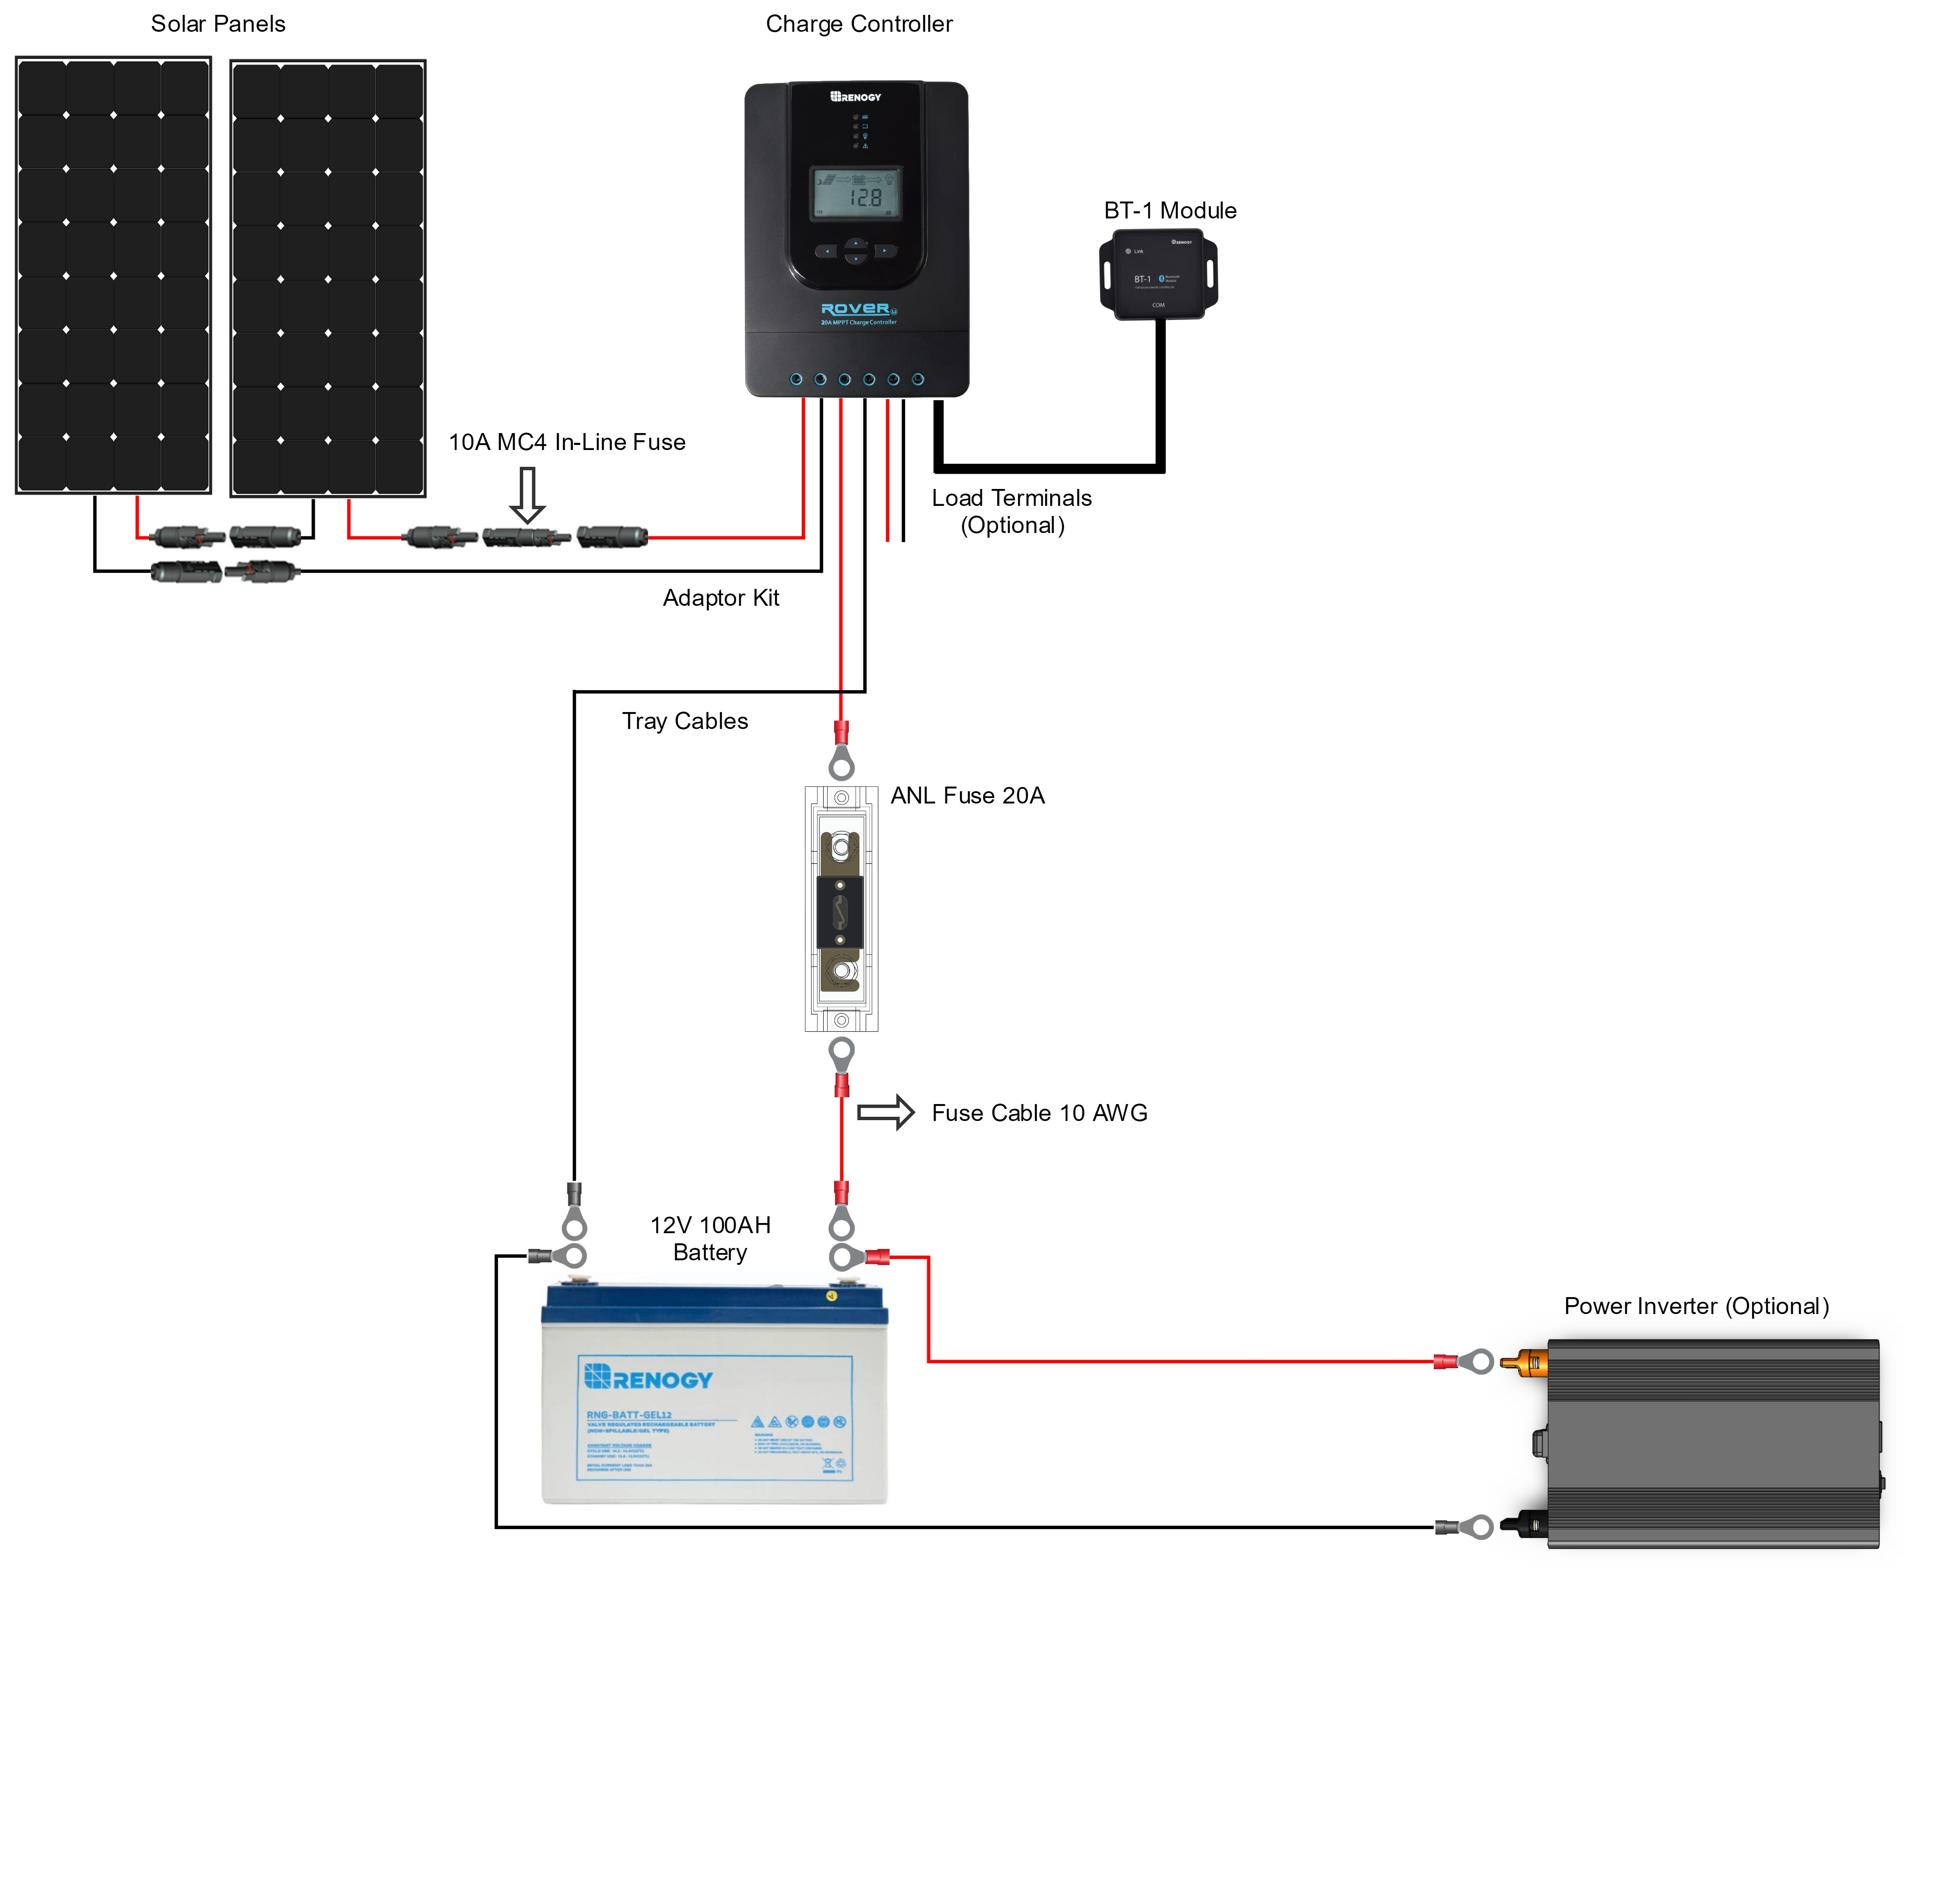 Wiring Questions For Renogy Solar Kit   Vandwellers